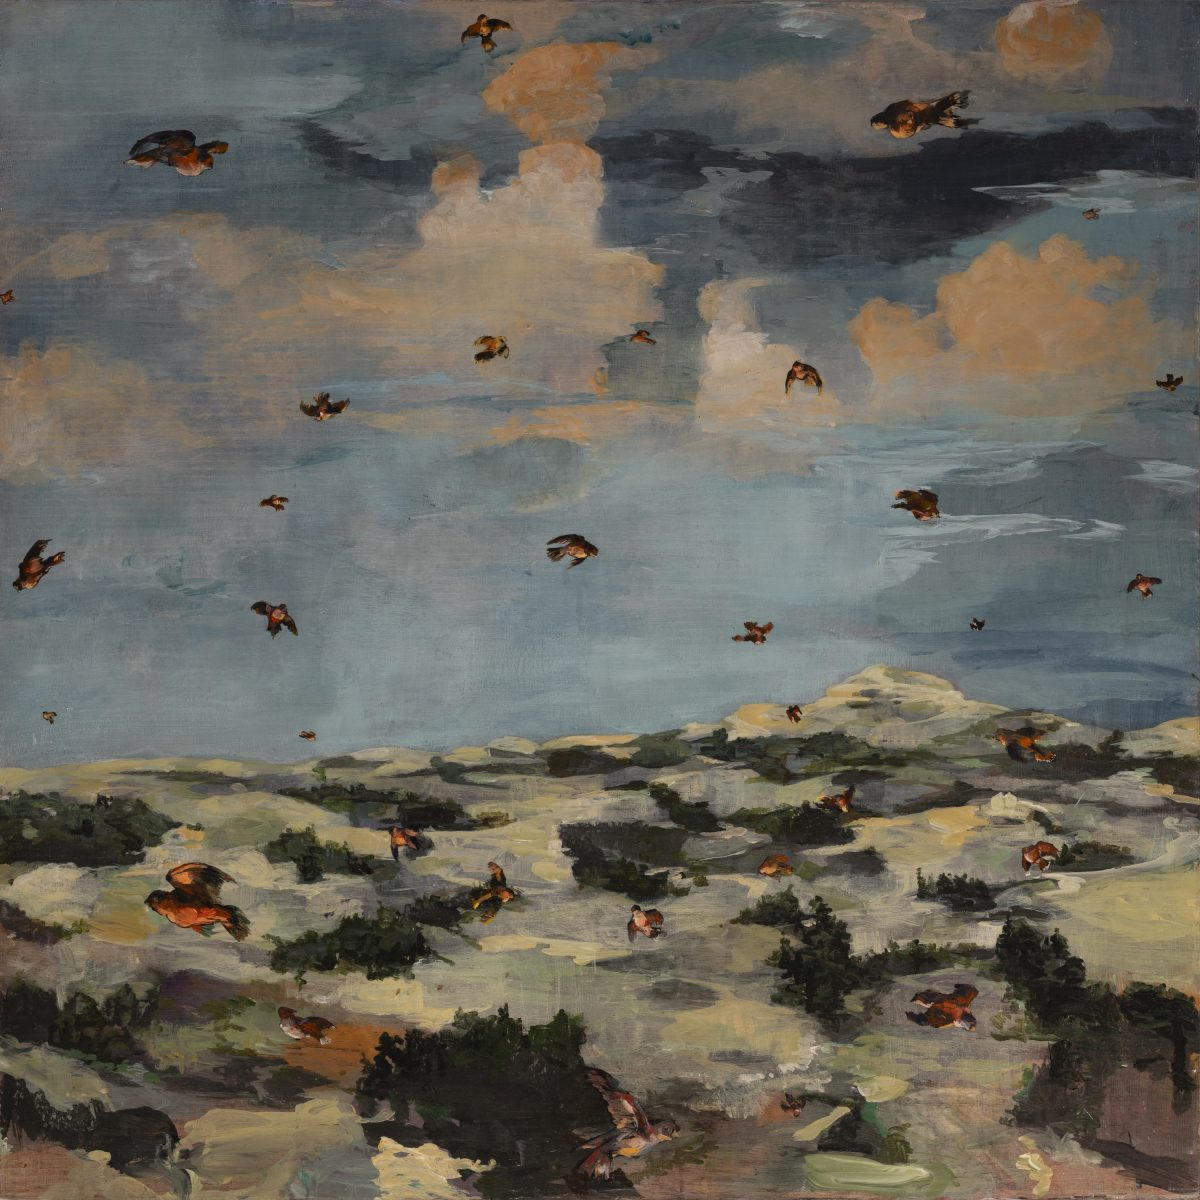 Leslie Lerner - My Life in France: The Sky Above my Home is Alive with Circling Red Birds